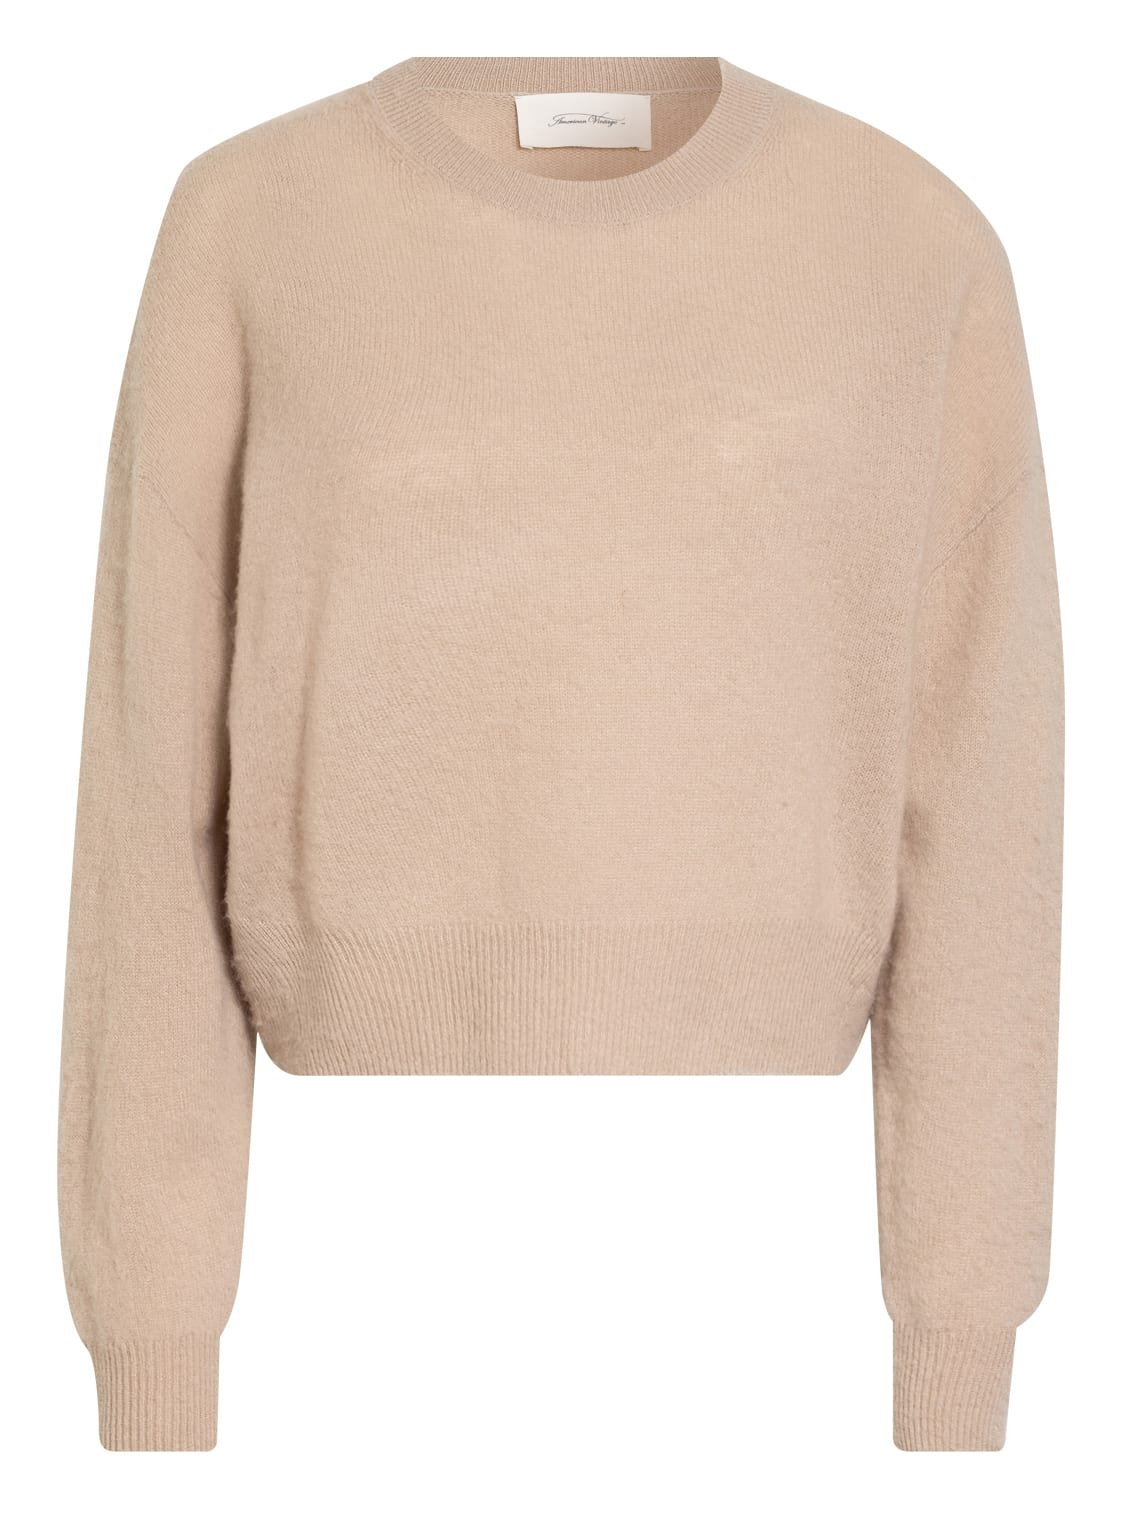 Image of American Vintage Cashmere-Pullover beige